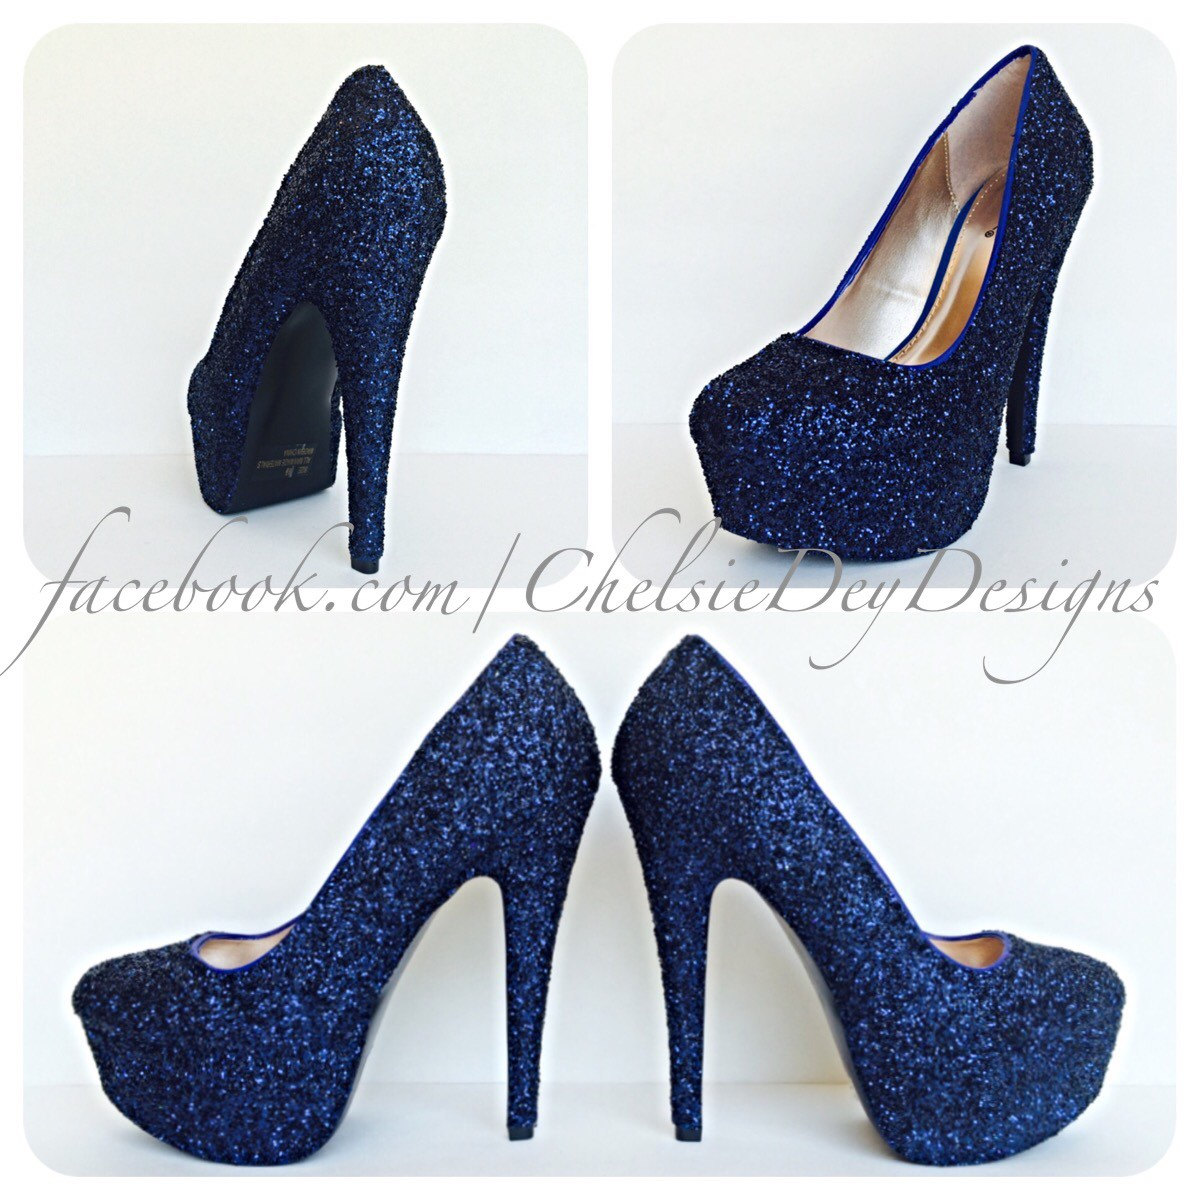 Navy Blue High Heels   Glitter High Heel Closed Toe Pumps   Dark Blue Shoes